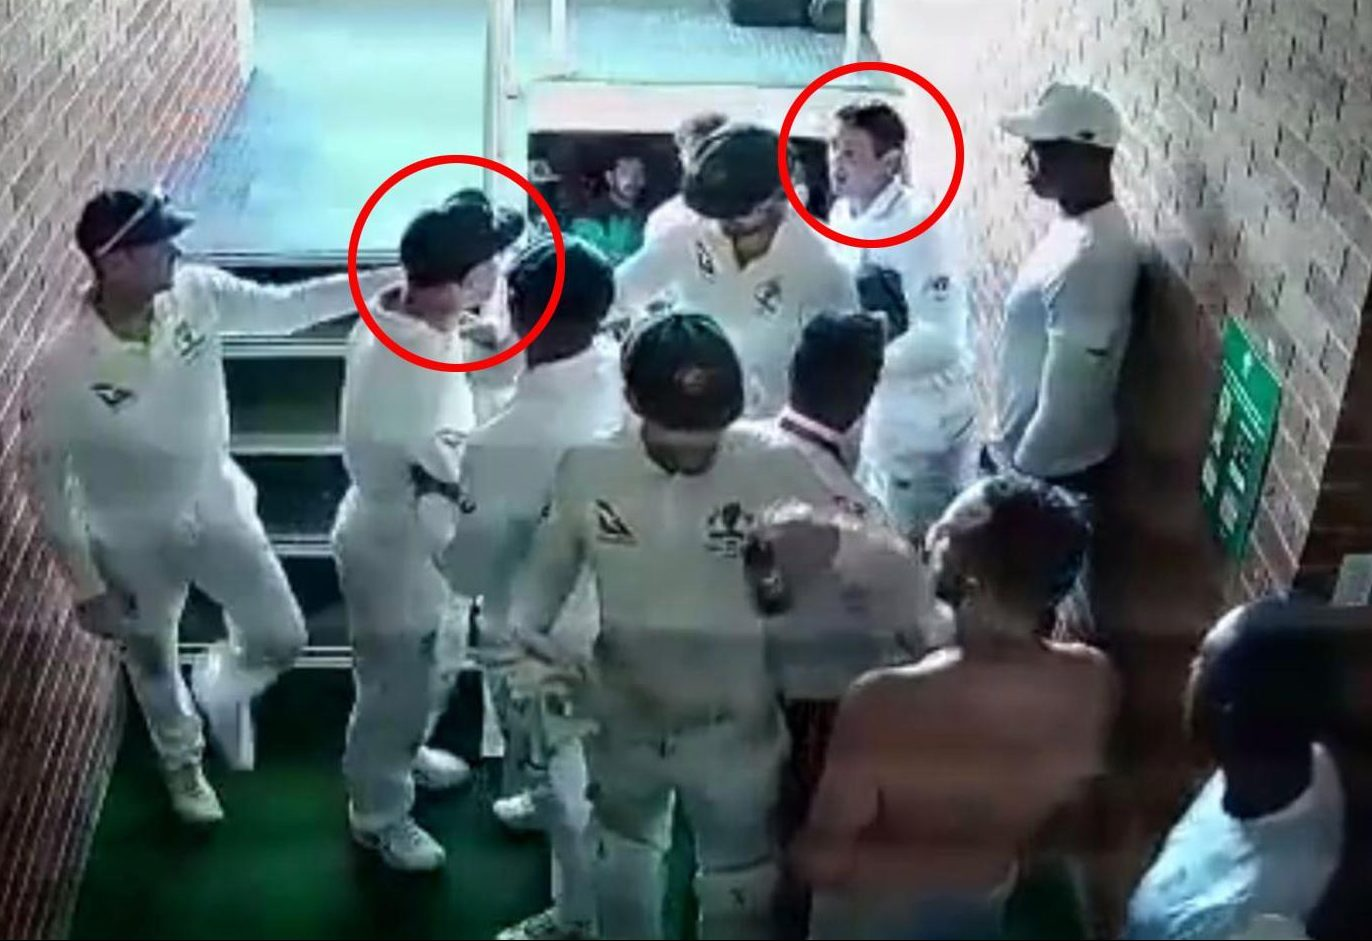 Things start hotting up en route to the dressing rooms as David Warner sets about confronting Quinton de Kock